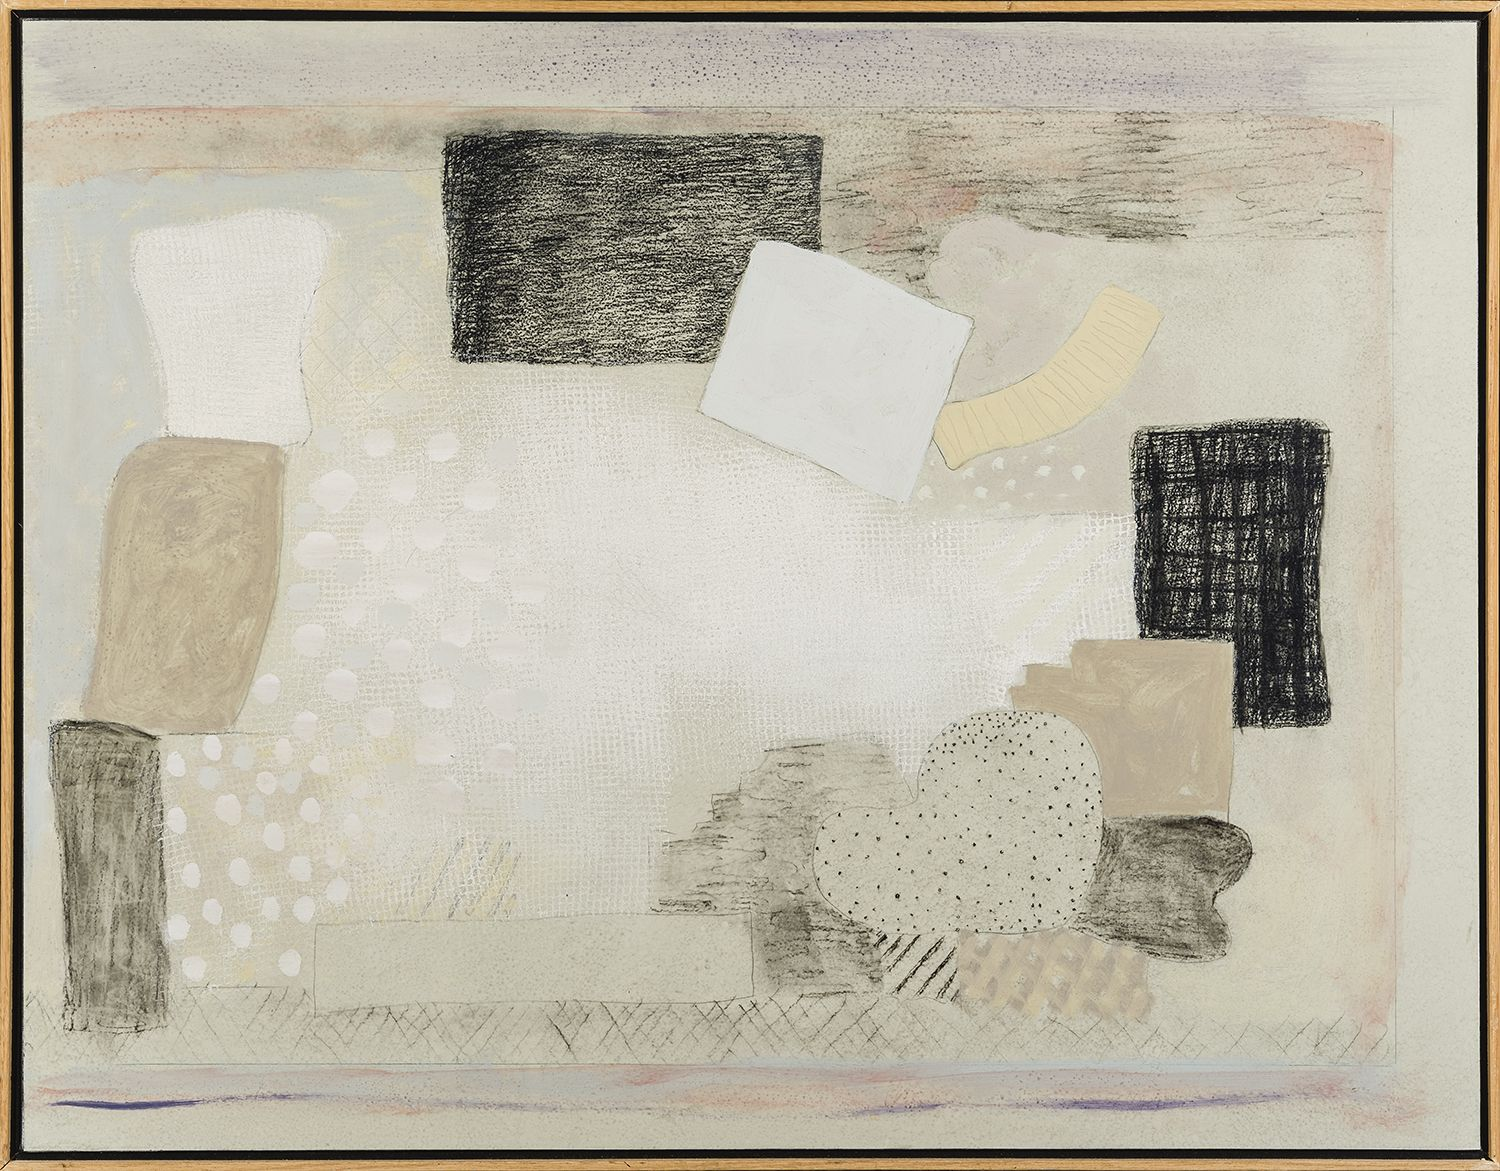 Untitled, 1997 Acrylic and graphite on paper mounted on canvas, 27 x 35 in.